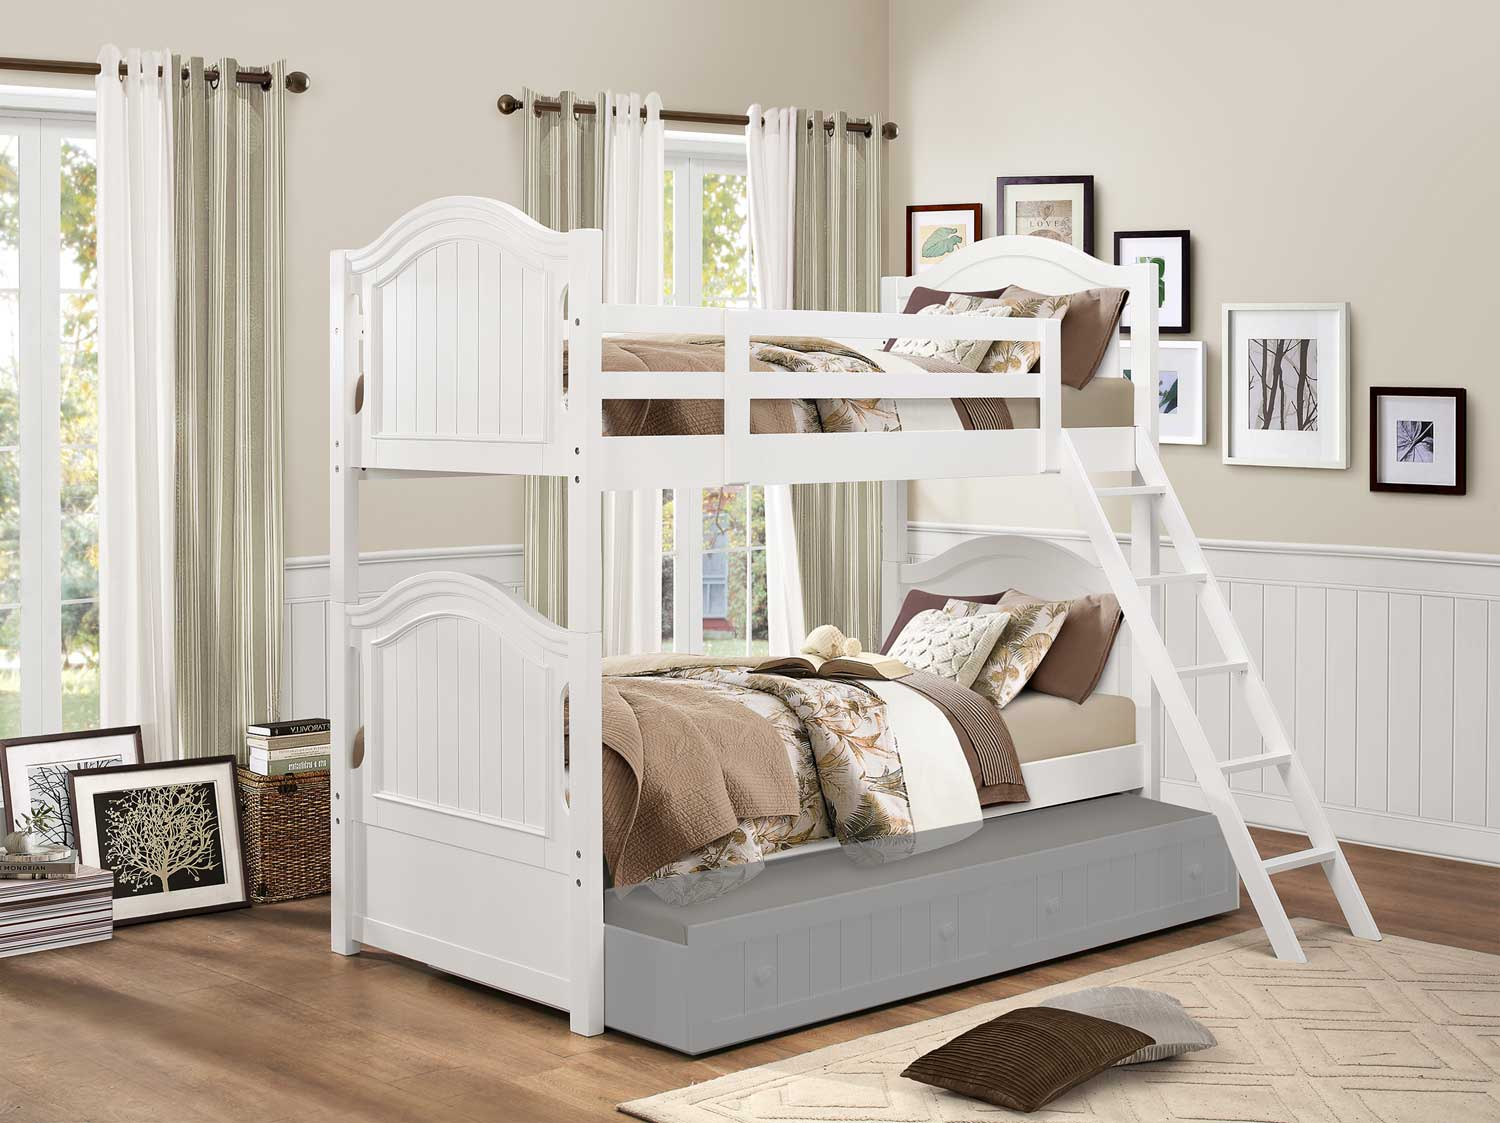 Homelegance Clementine Twin/Twin Bunk Bed - White